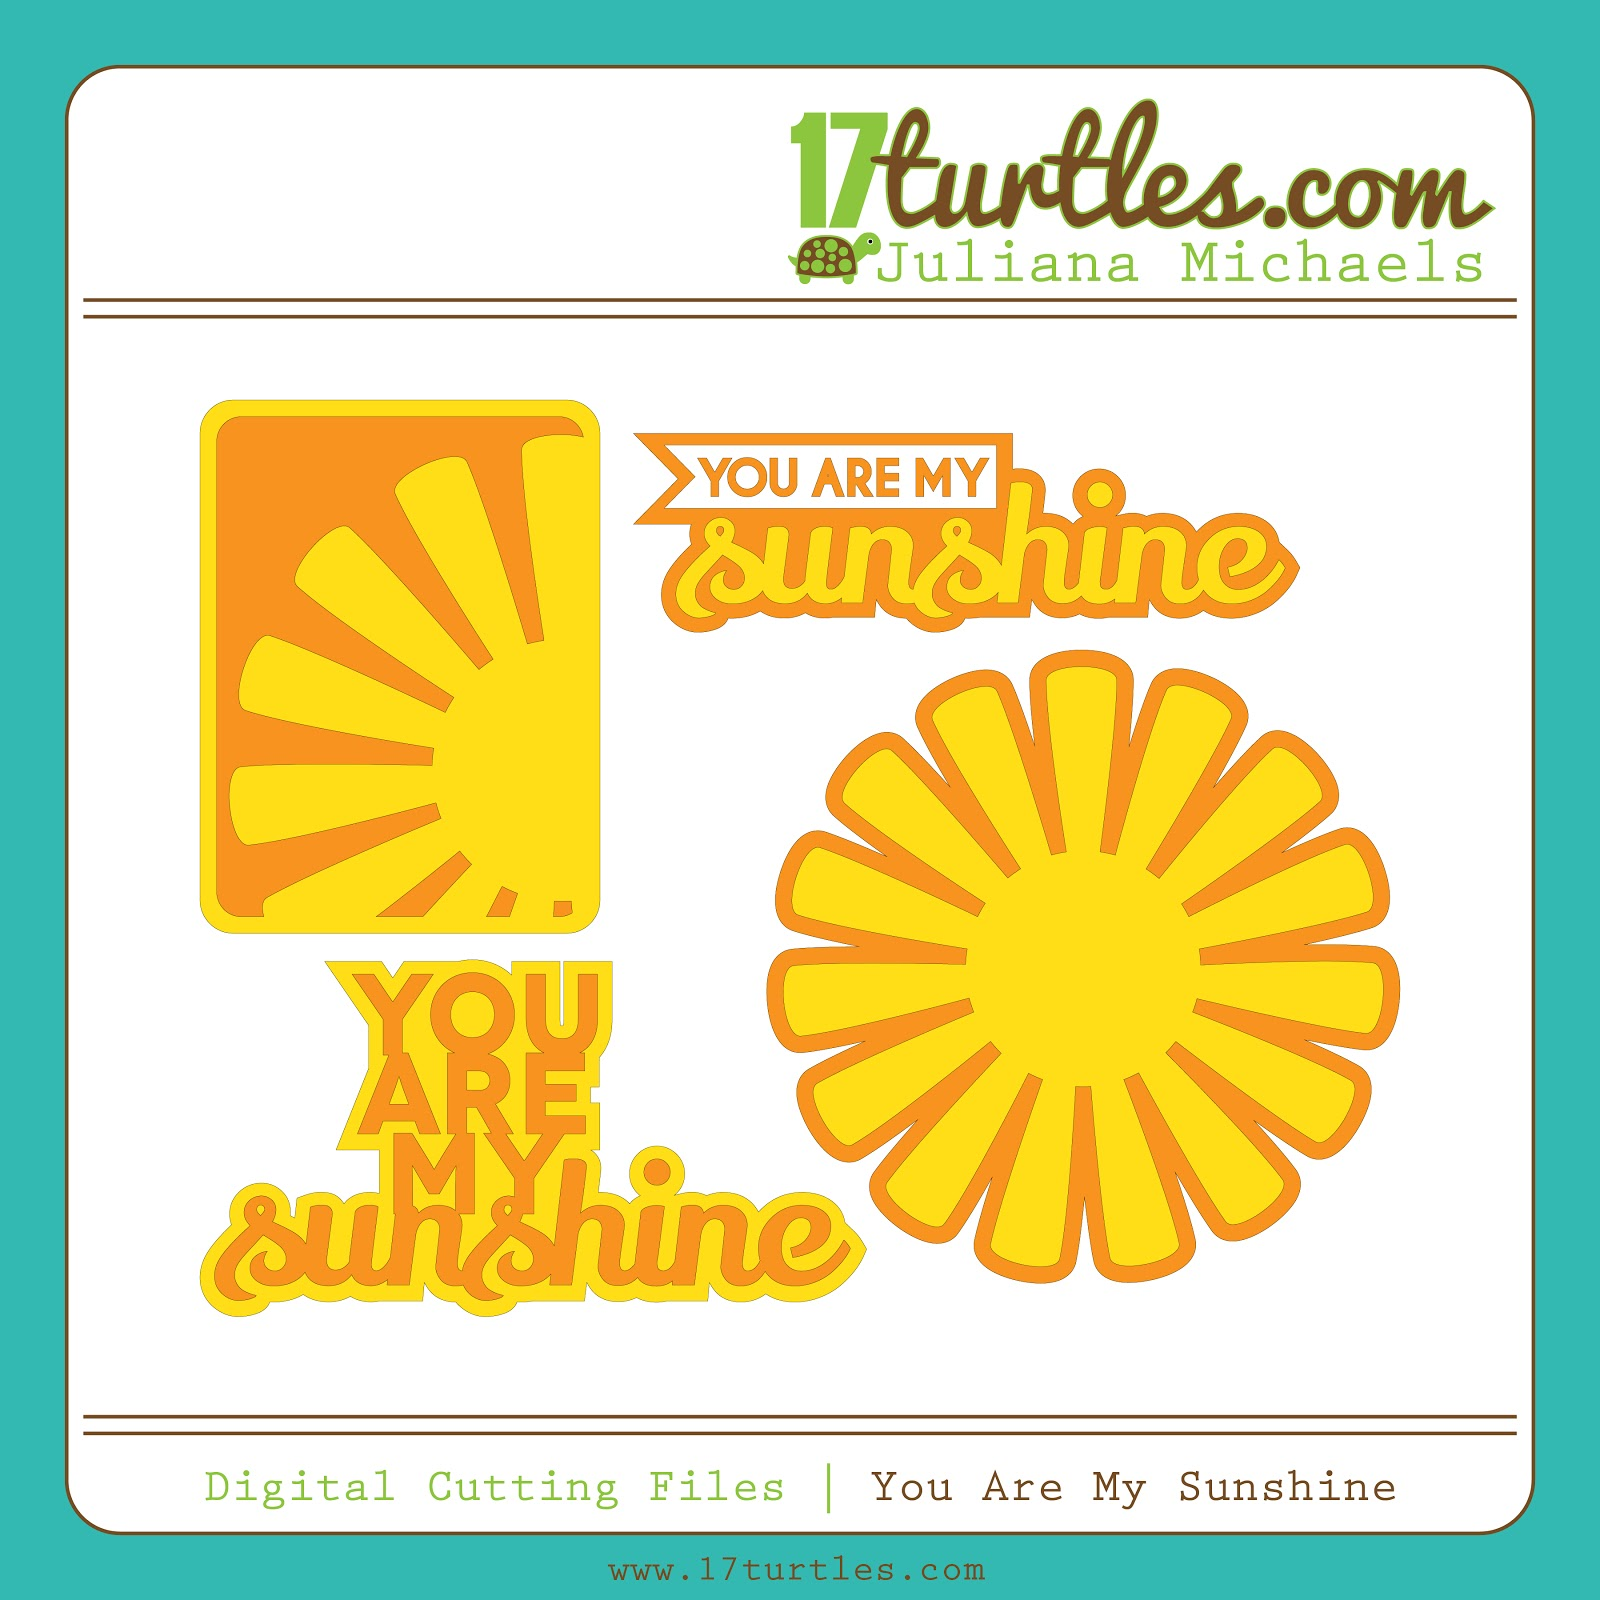 http://1.bp.blogspot.com/-4tA3XRUCDkA/U-O3xtyNn-I/AAAAAAAARpk/chRgWh2yL_0/s1600/You_Are_My_Sunshine.jpg